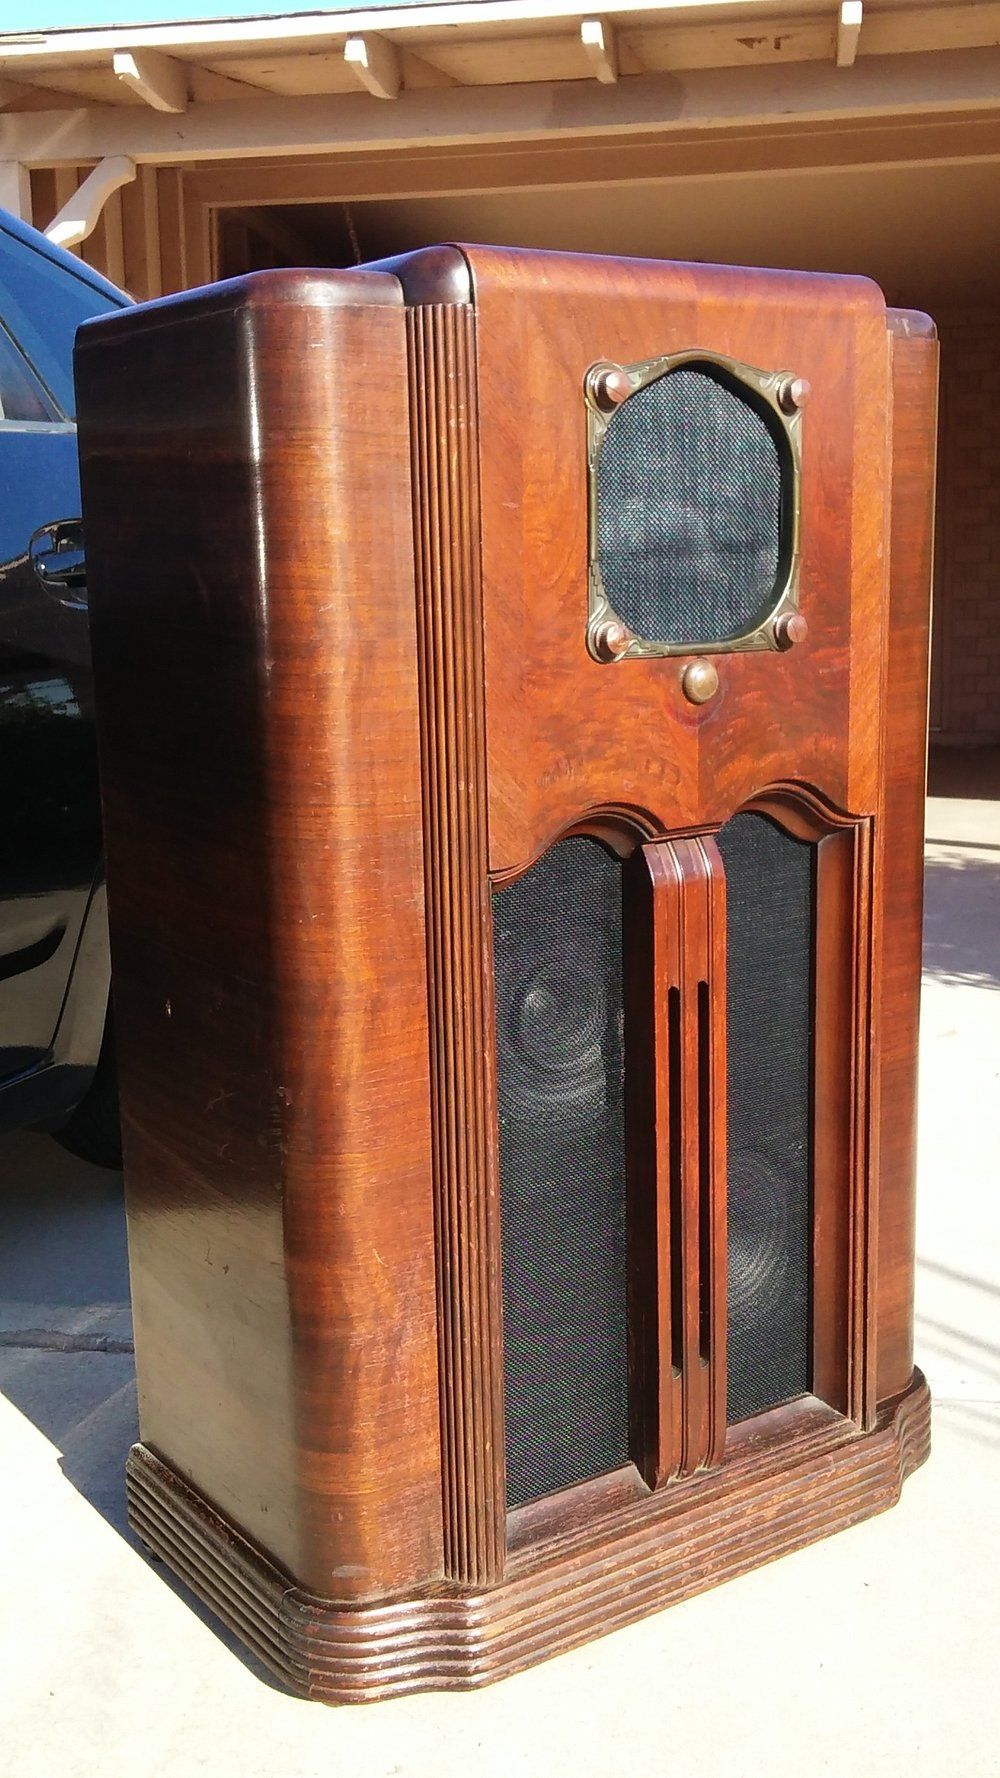 Zenith 10 S 155 Antique Radio Cabinet Now An MP3/iPod Player!